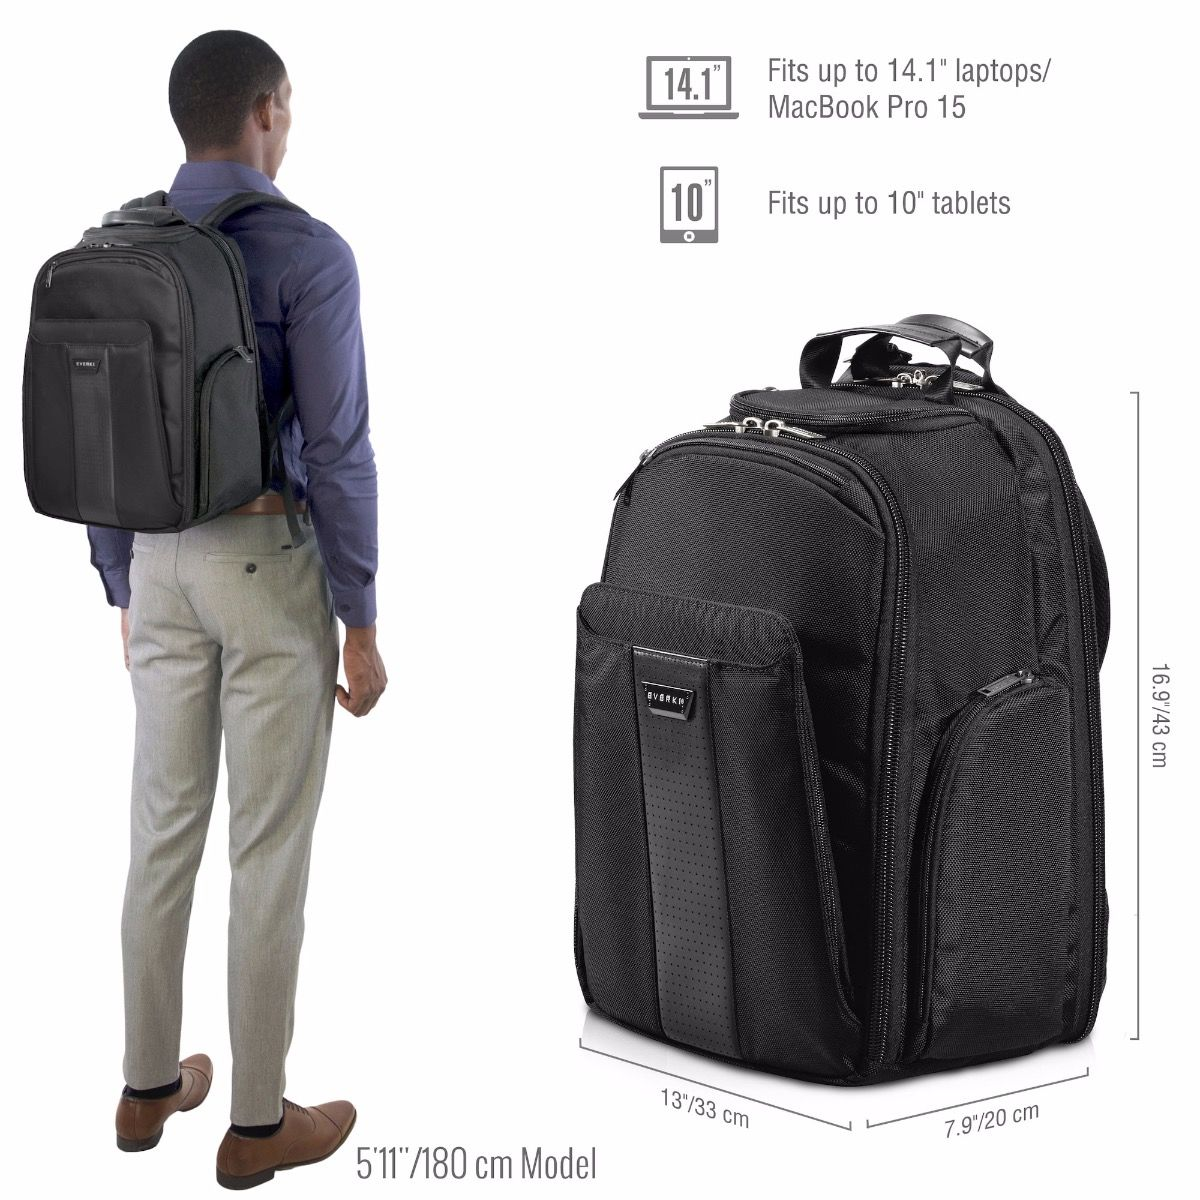 Versa Premium Travel Friendly Laptop Backpack Up To 14 1 Inch Macbook Pro 15 Everki